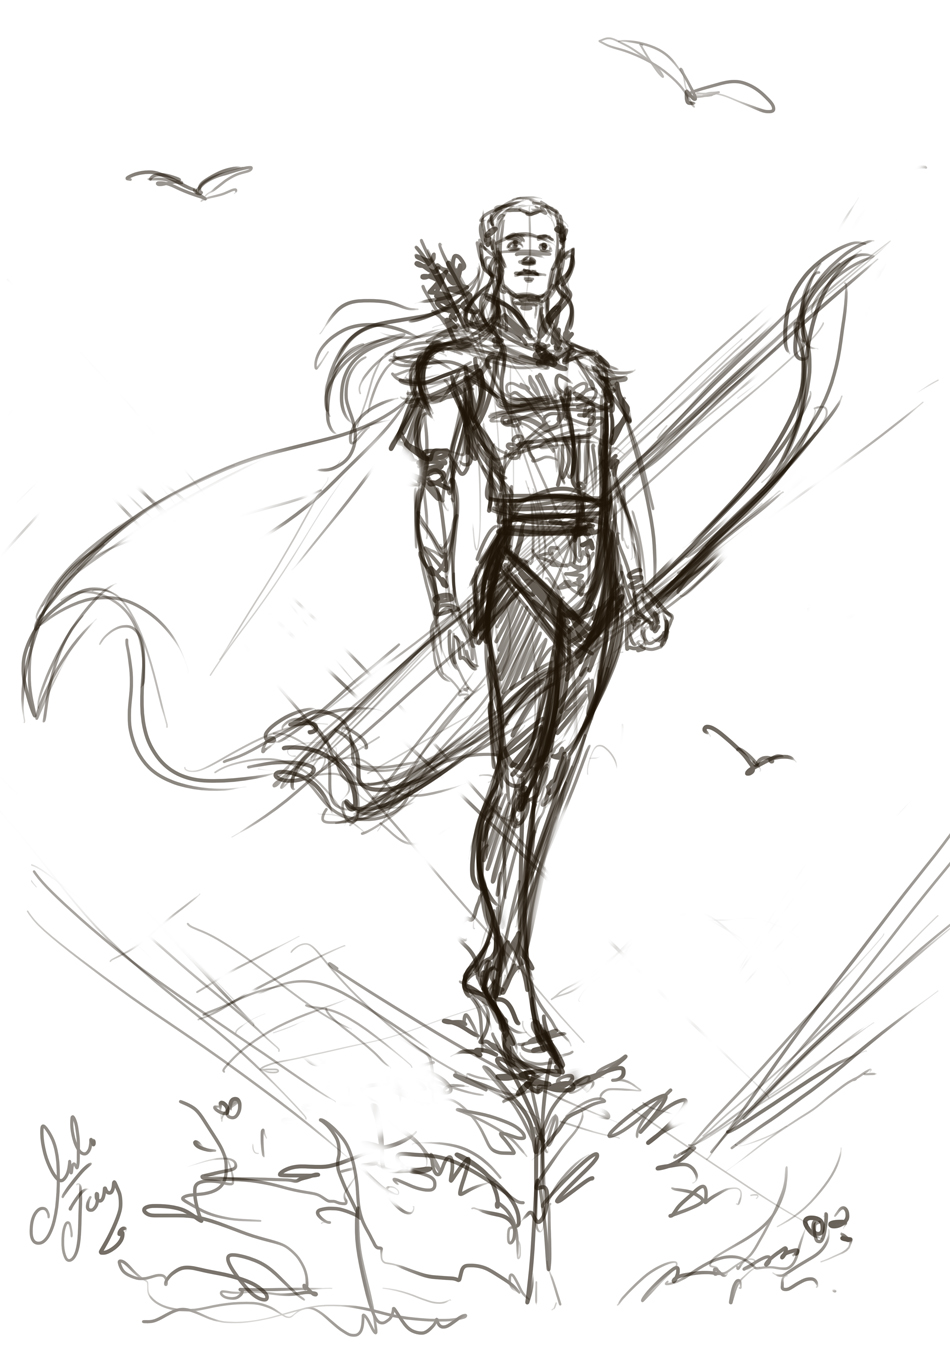 Legolas Greenleaf rough sketch 01